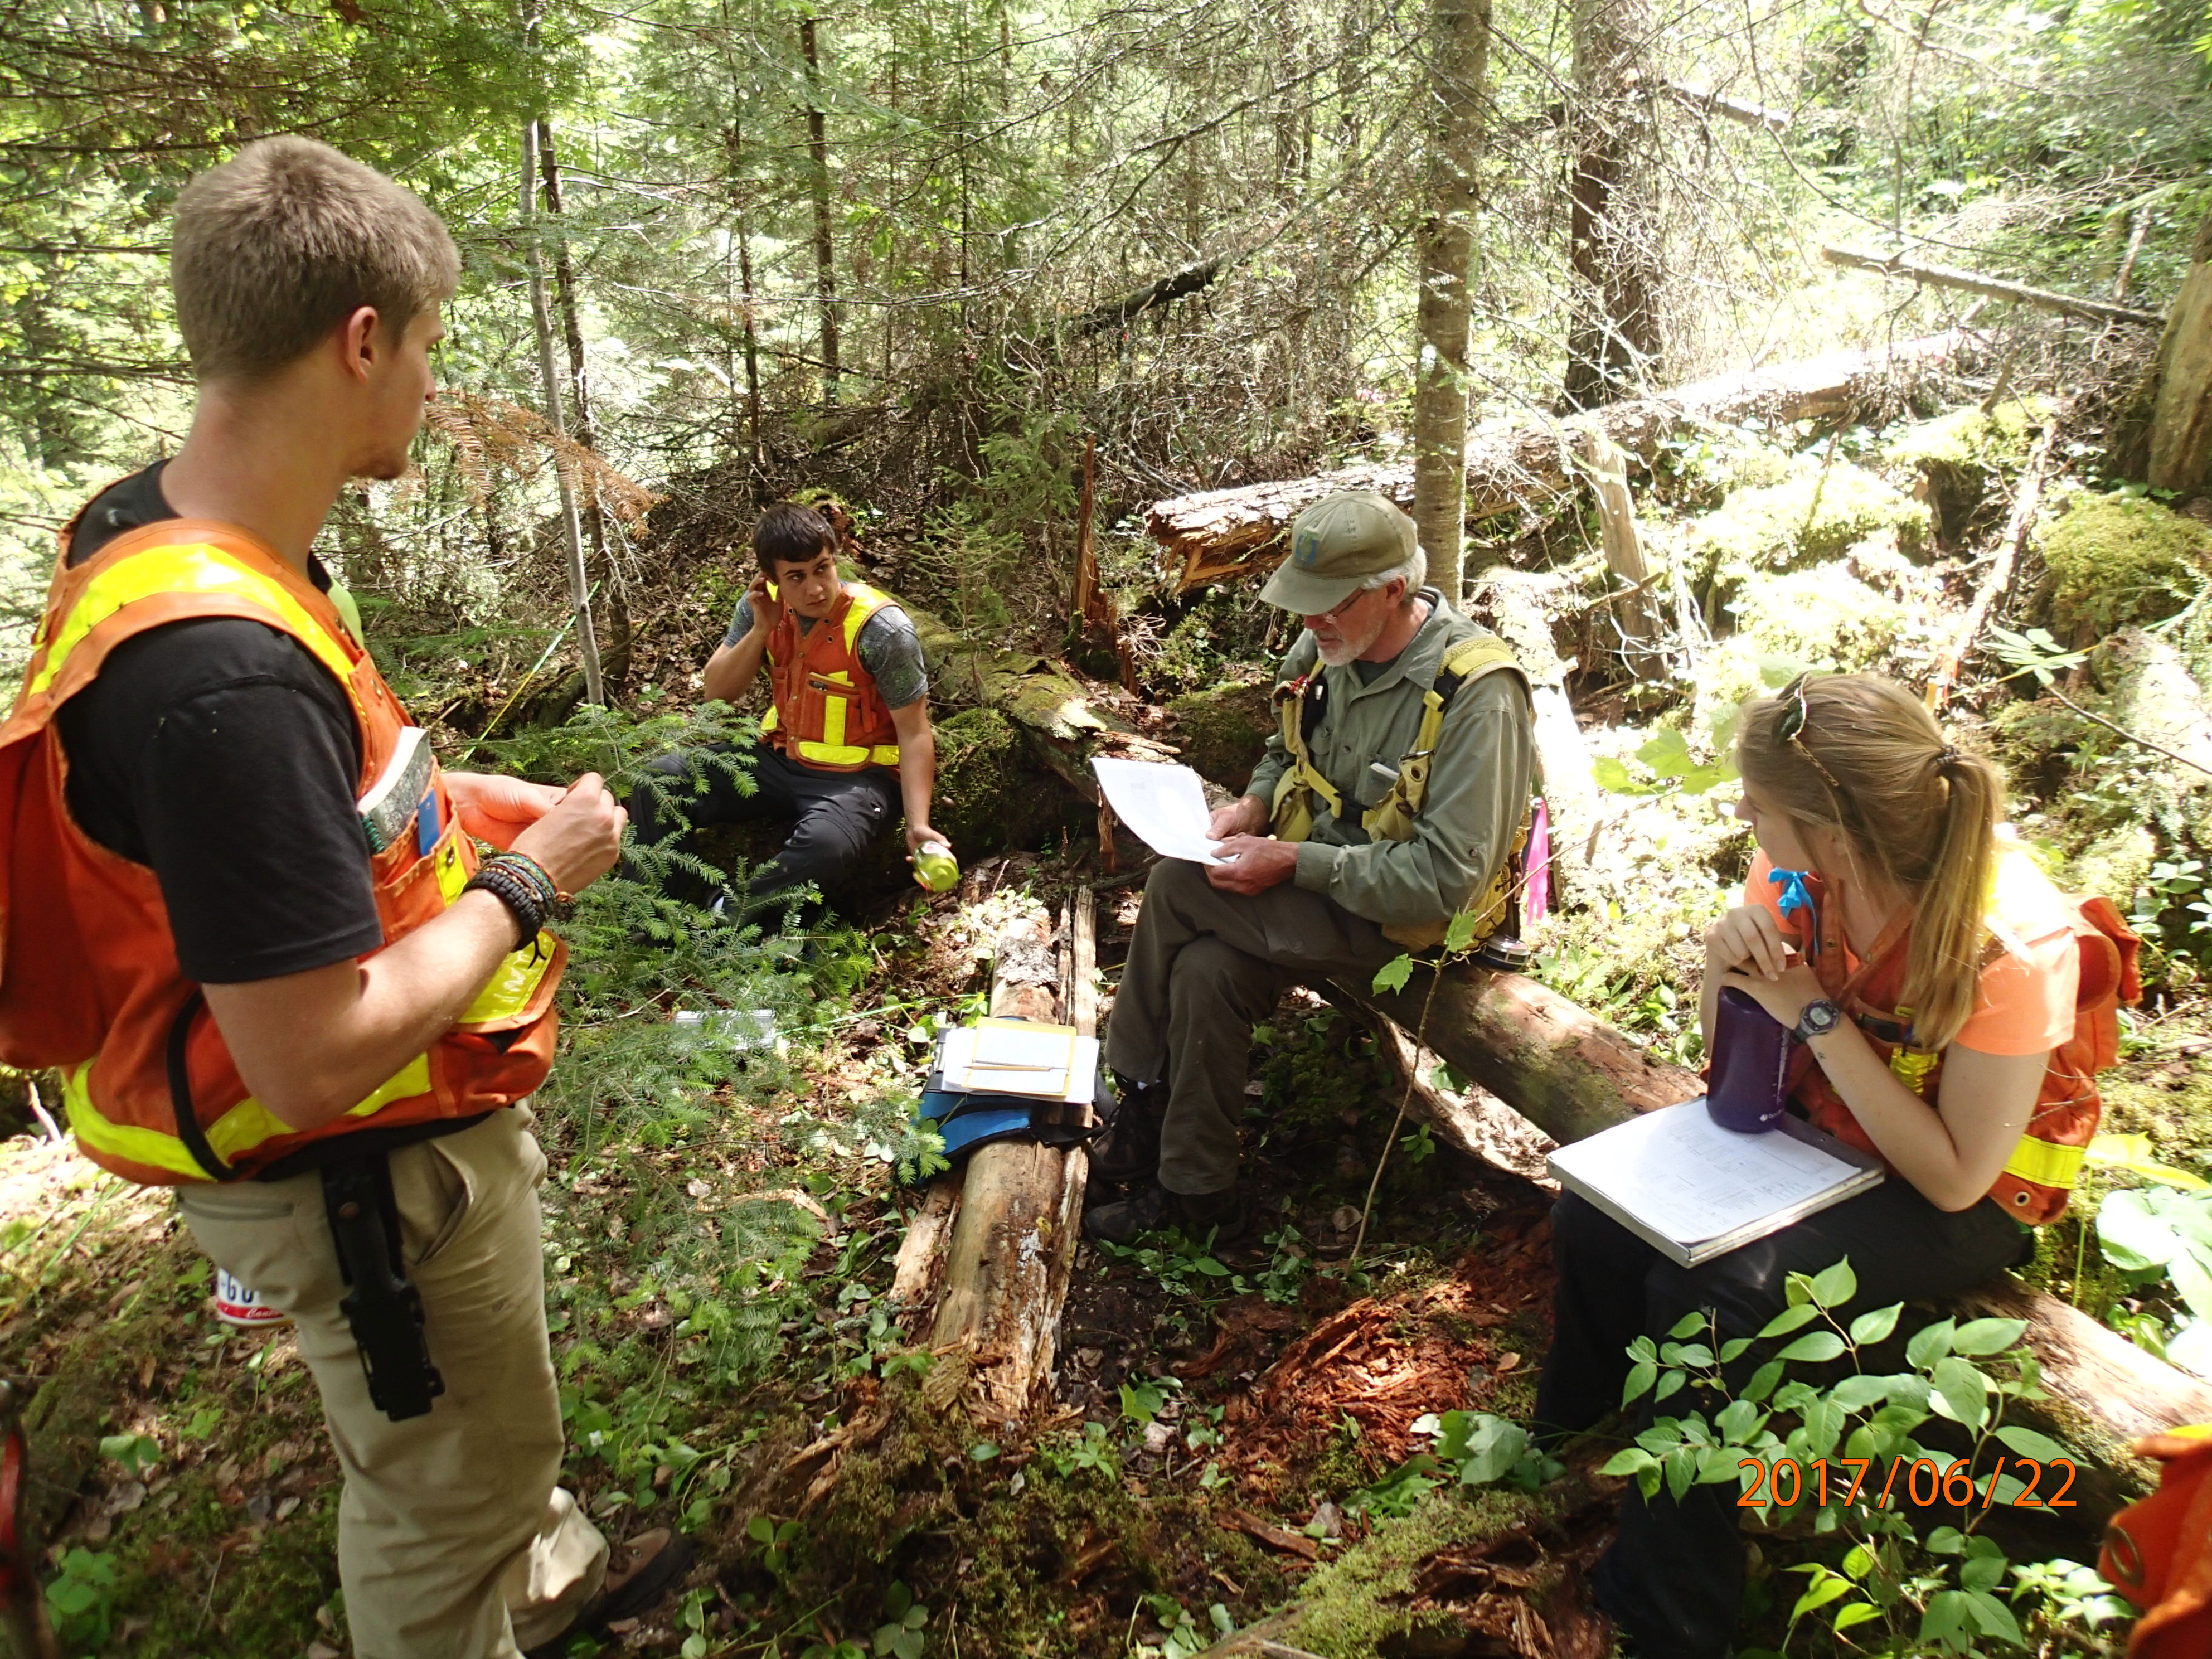 Quetico Foundation Student Summer Research Team familiarizes with vegetation monitoring, with Gerry Racey, before getting further insight into studies of wildfires and planned fire management on a summer-long wilderness canoe excursion. Learn about the work that the Student Summer Research Program does and learn more about the Quetico Foundation here: https://queticofoundation.org/what-we-do/programs/ Photo credit: Brian Jackson, Quetico Provincial Park Biologist